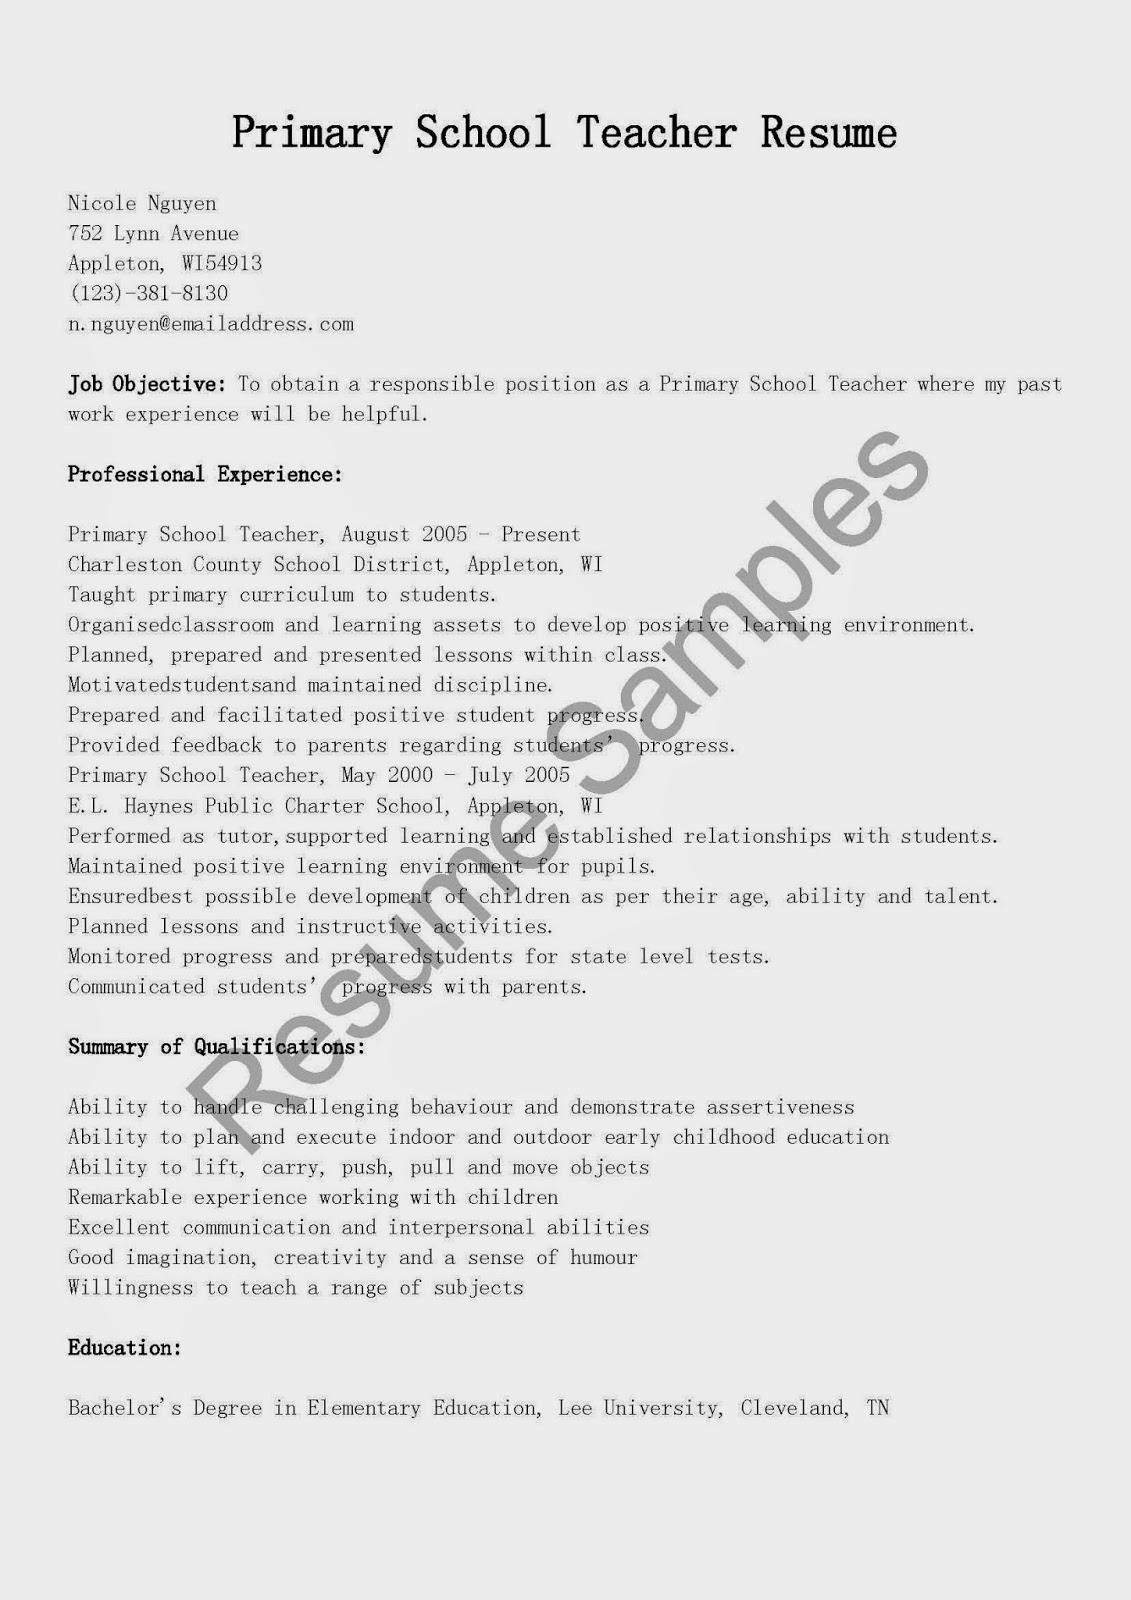 Best writing services company educationusa best place to buy english teacher resume samples elementary yelopaper